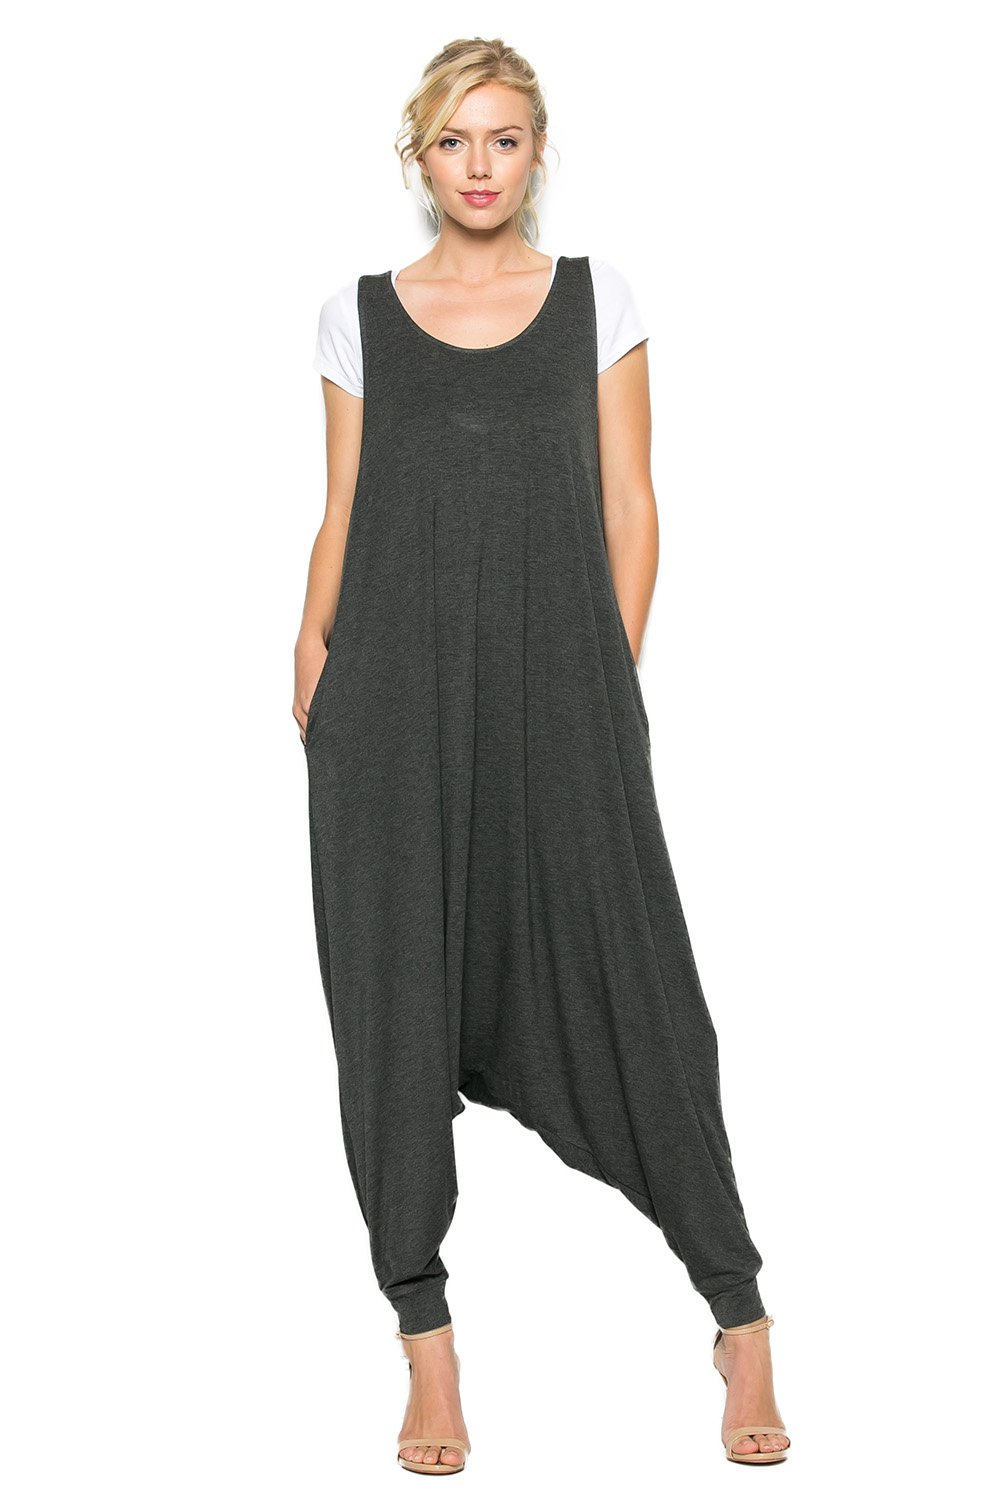 Annabelle Women's Comfy Rayon Solid Color Sleeveless Harem Jumpsuits Charcoal Mid Grey Large J8004